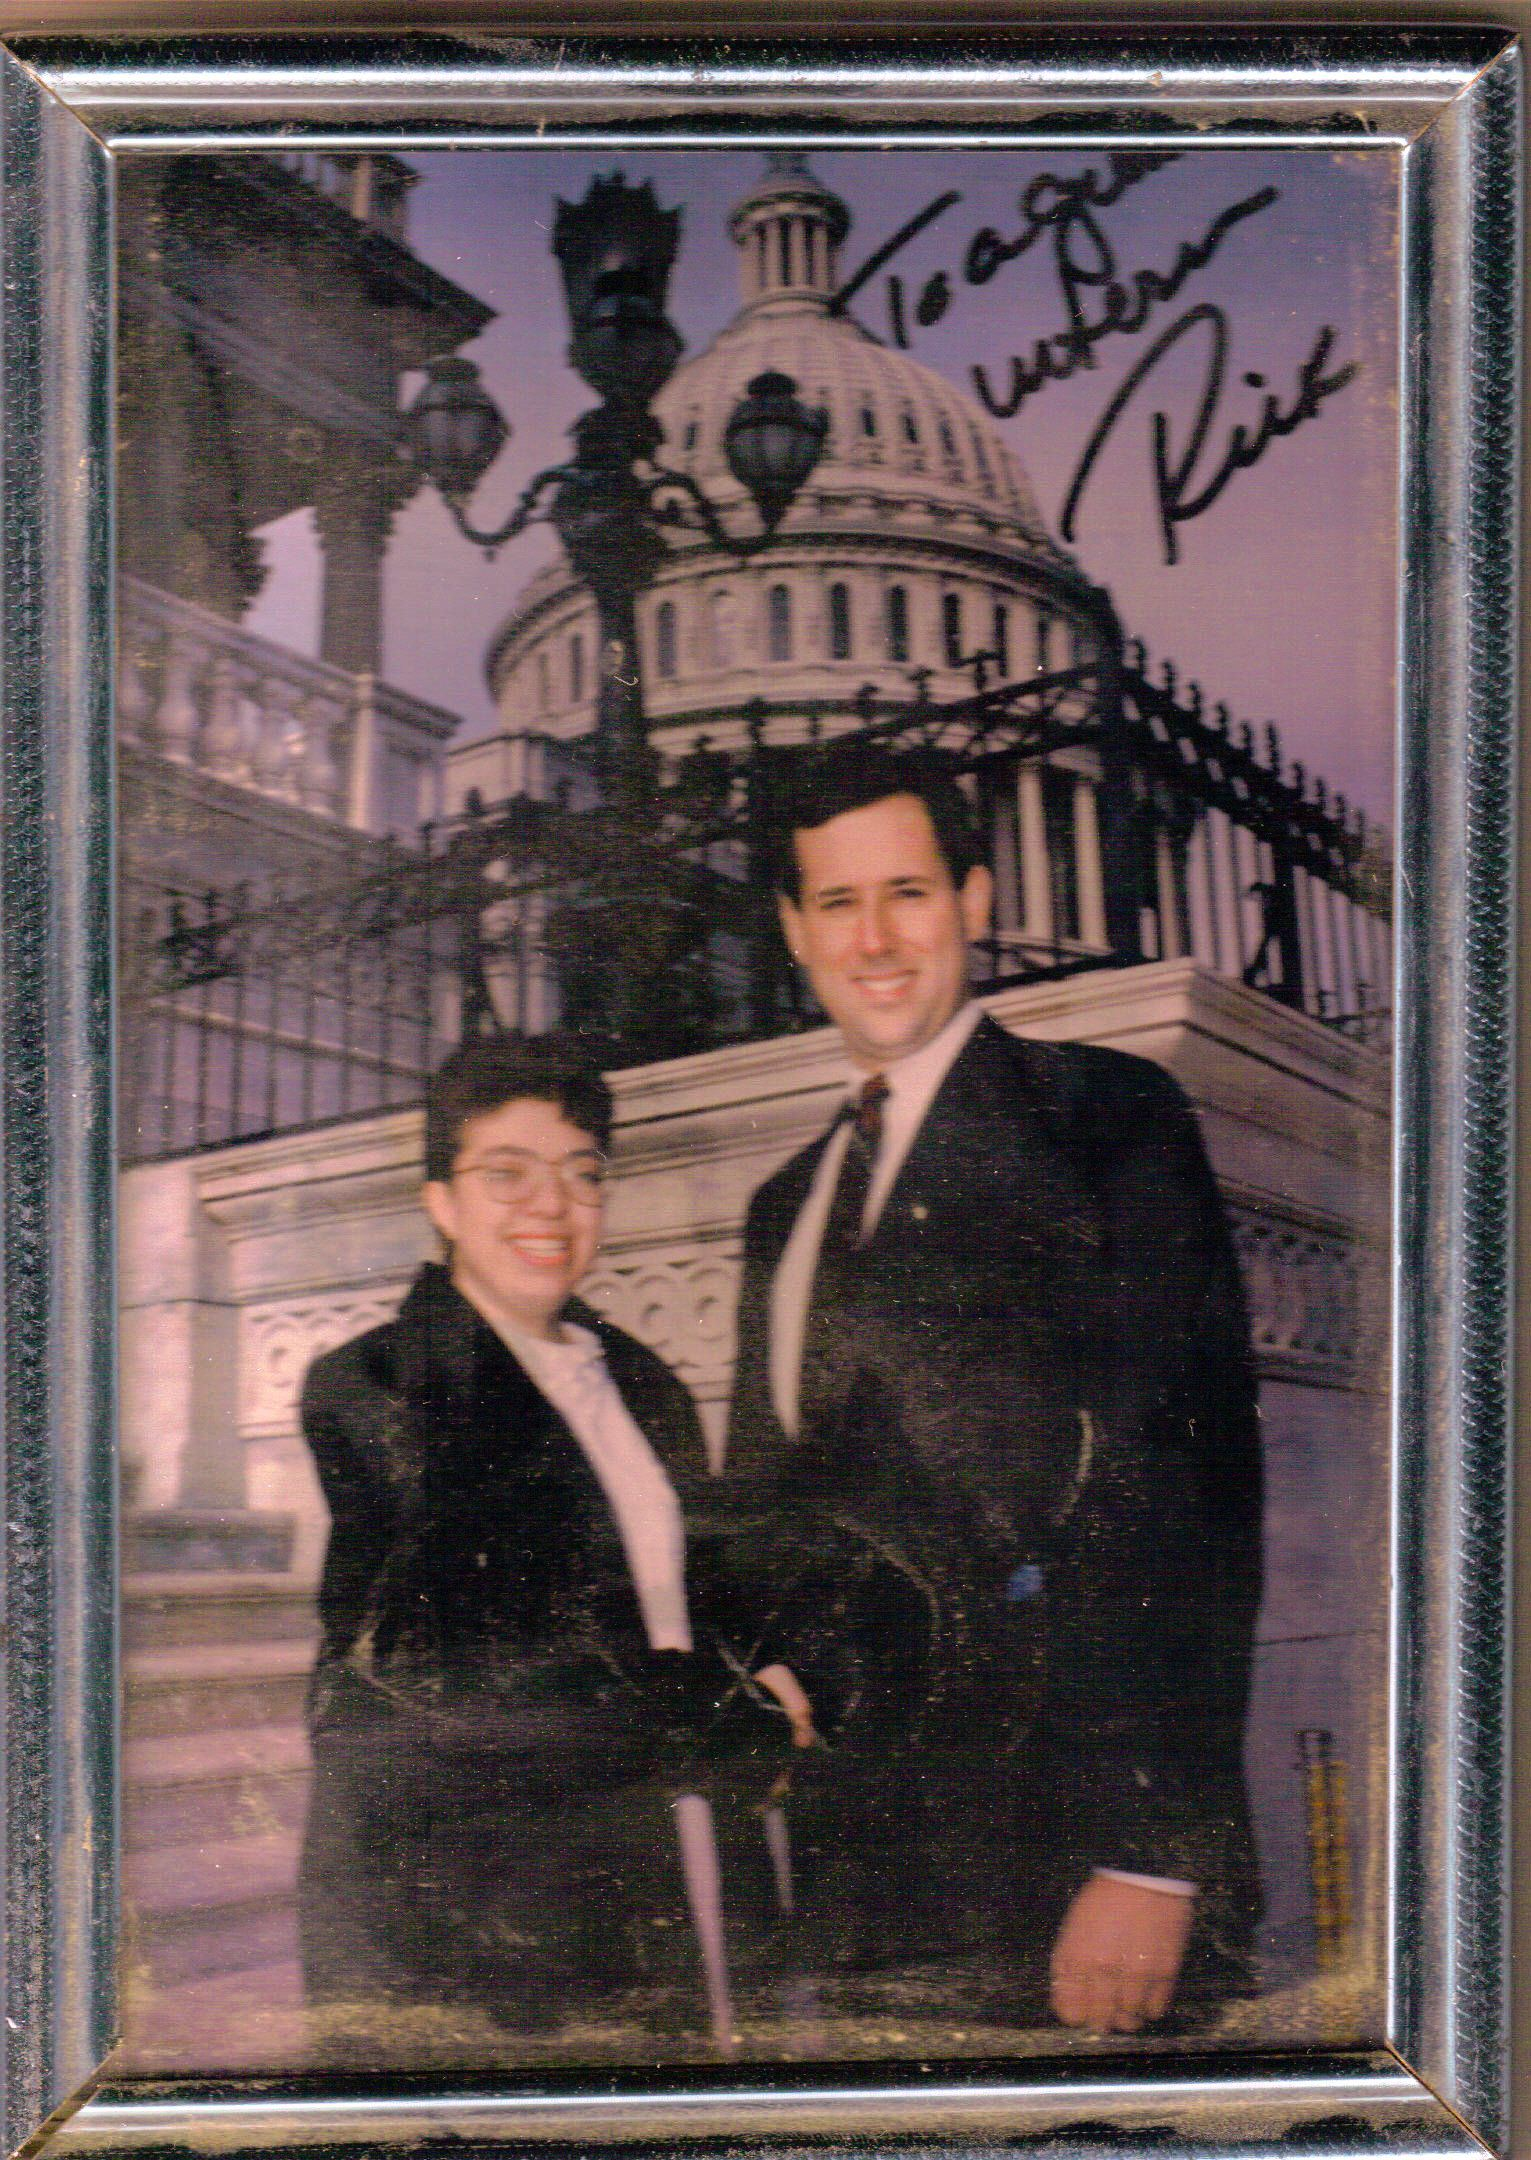 Sue Kerr posing with Rick Santorum